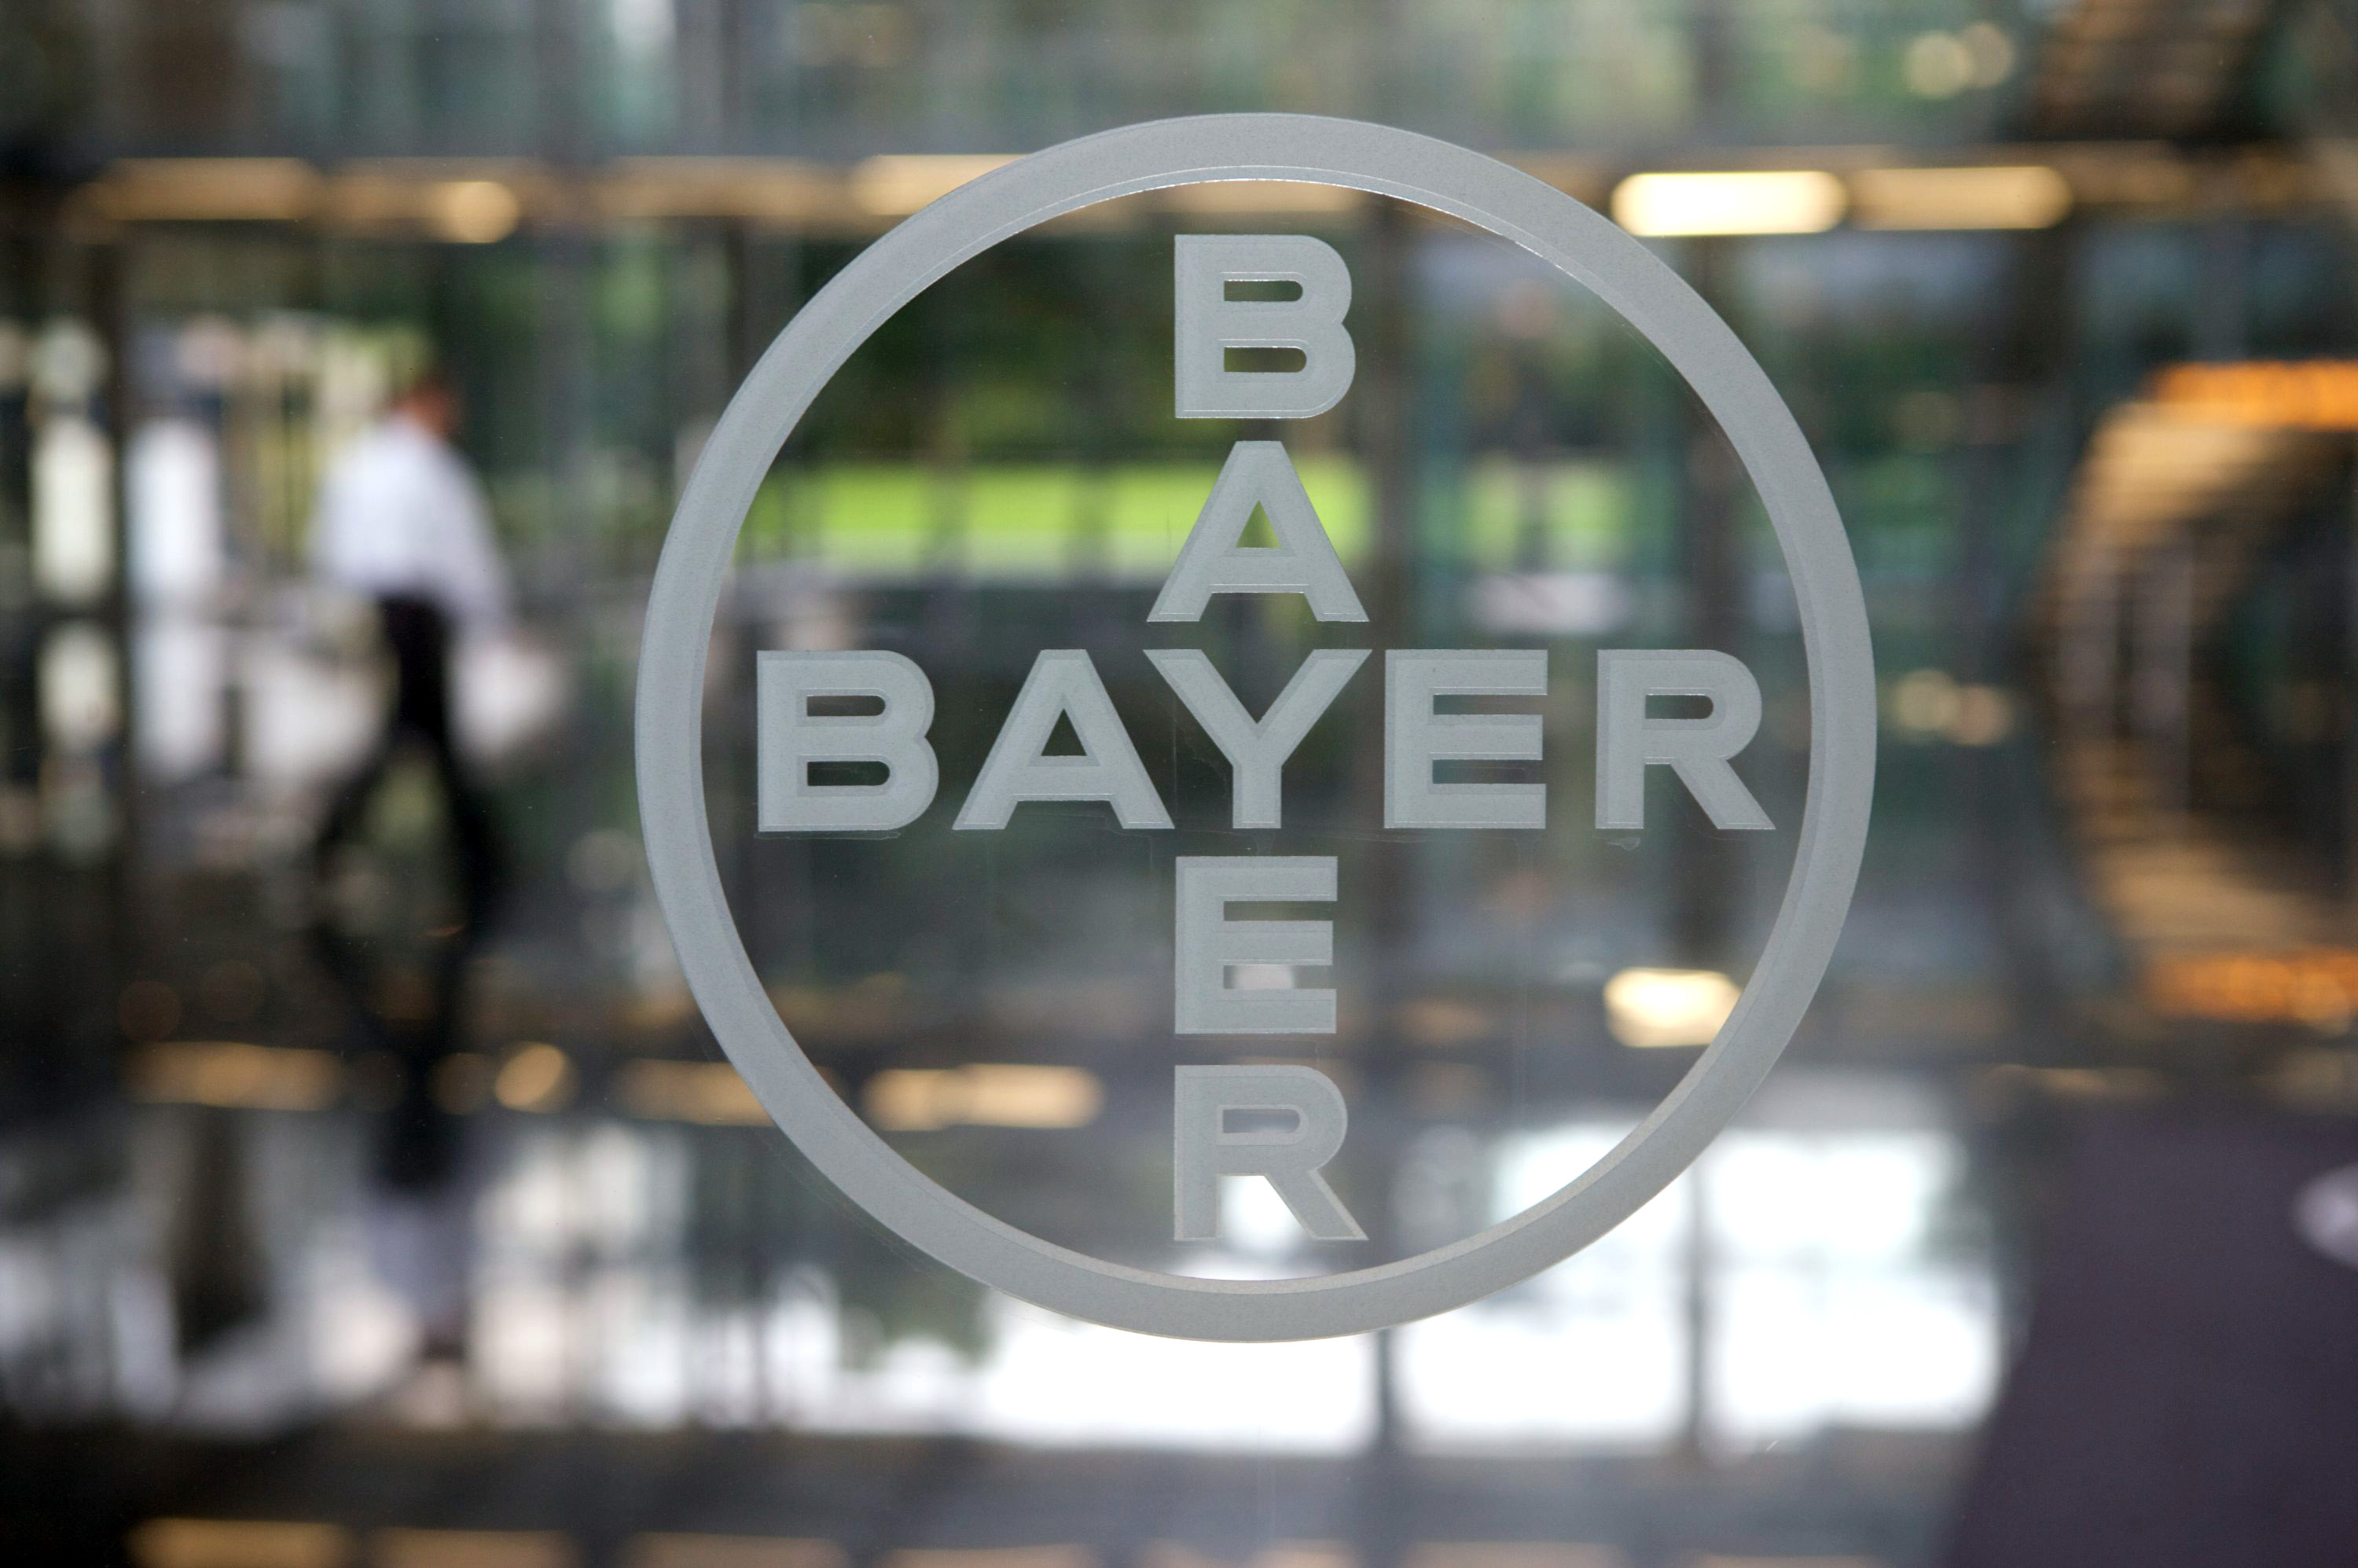 The logo of Bayer at the entrance of the company's headquarters in Leverkusen, Germany.